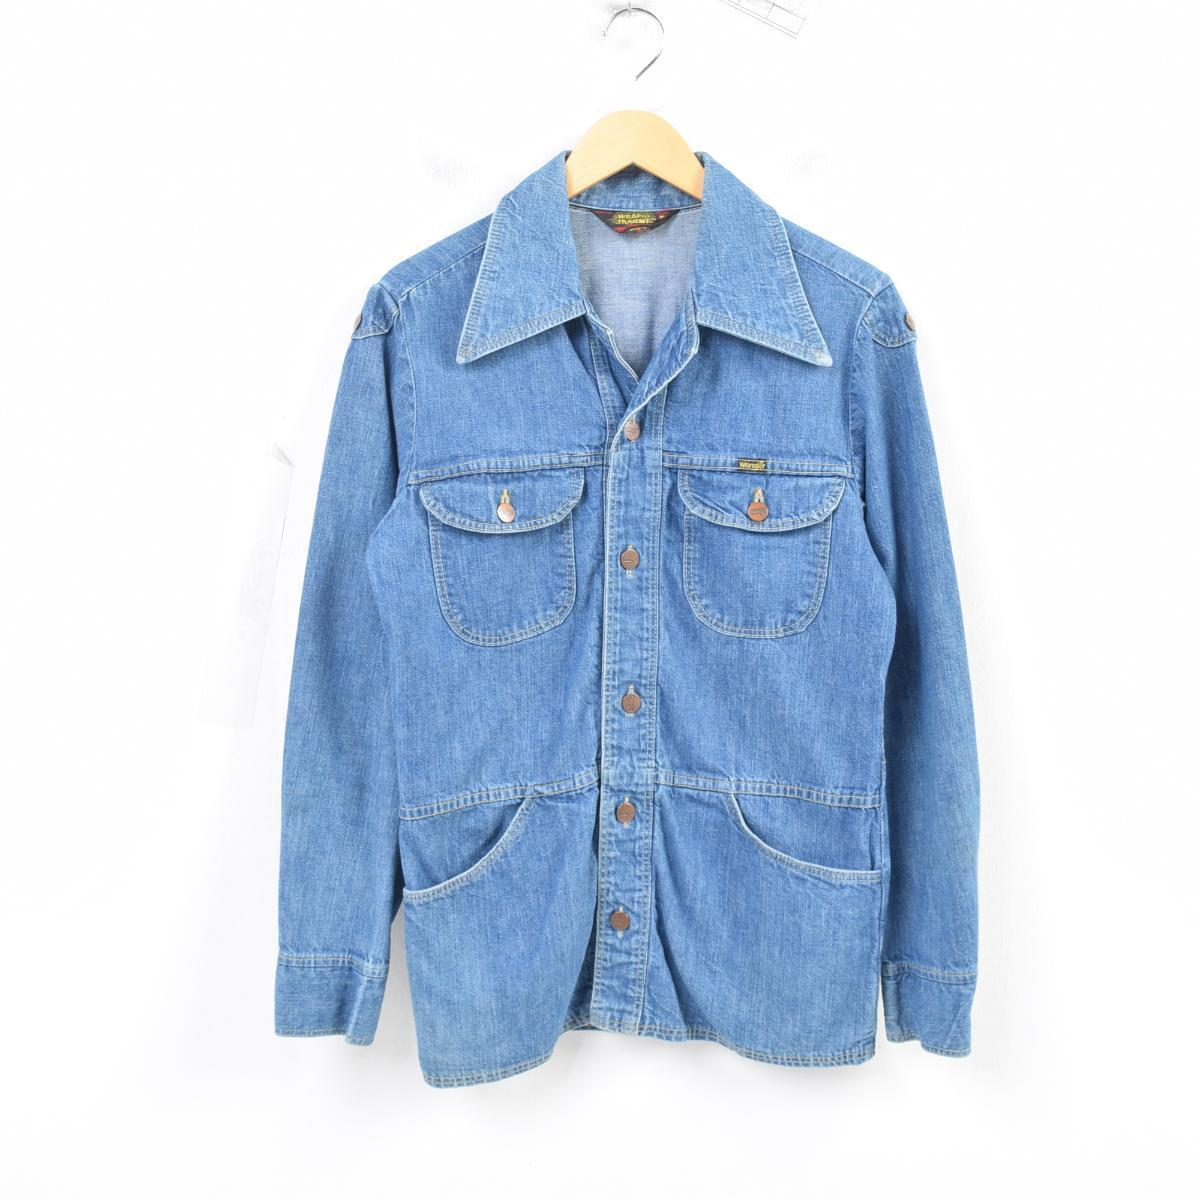 a17495ae8e Men M vintage  was4158 in the 70s made in Wrangler Wrangler WRAPID TRANSIT denim  shirt jacket USA